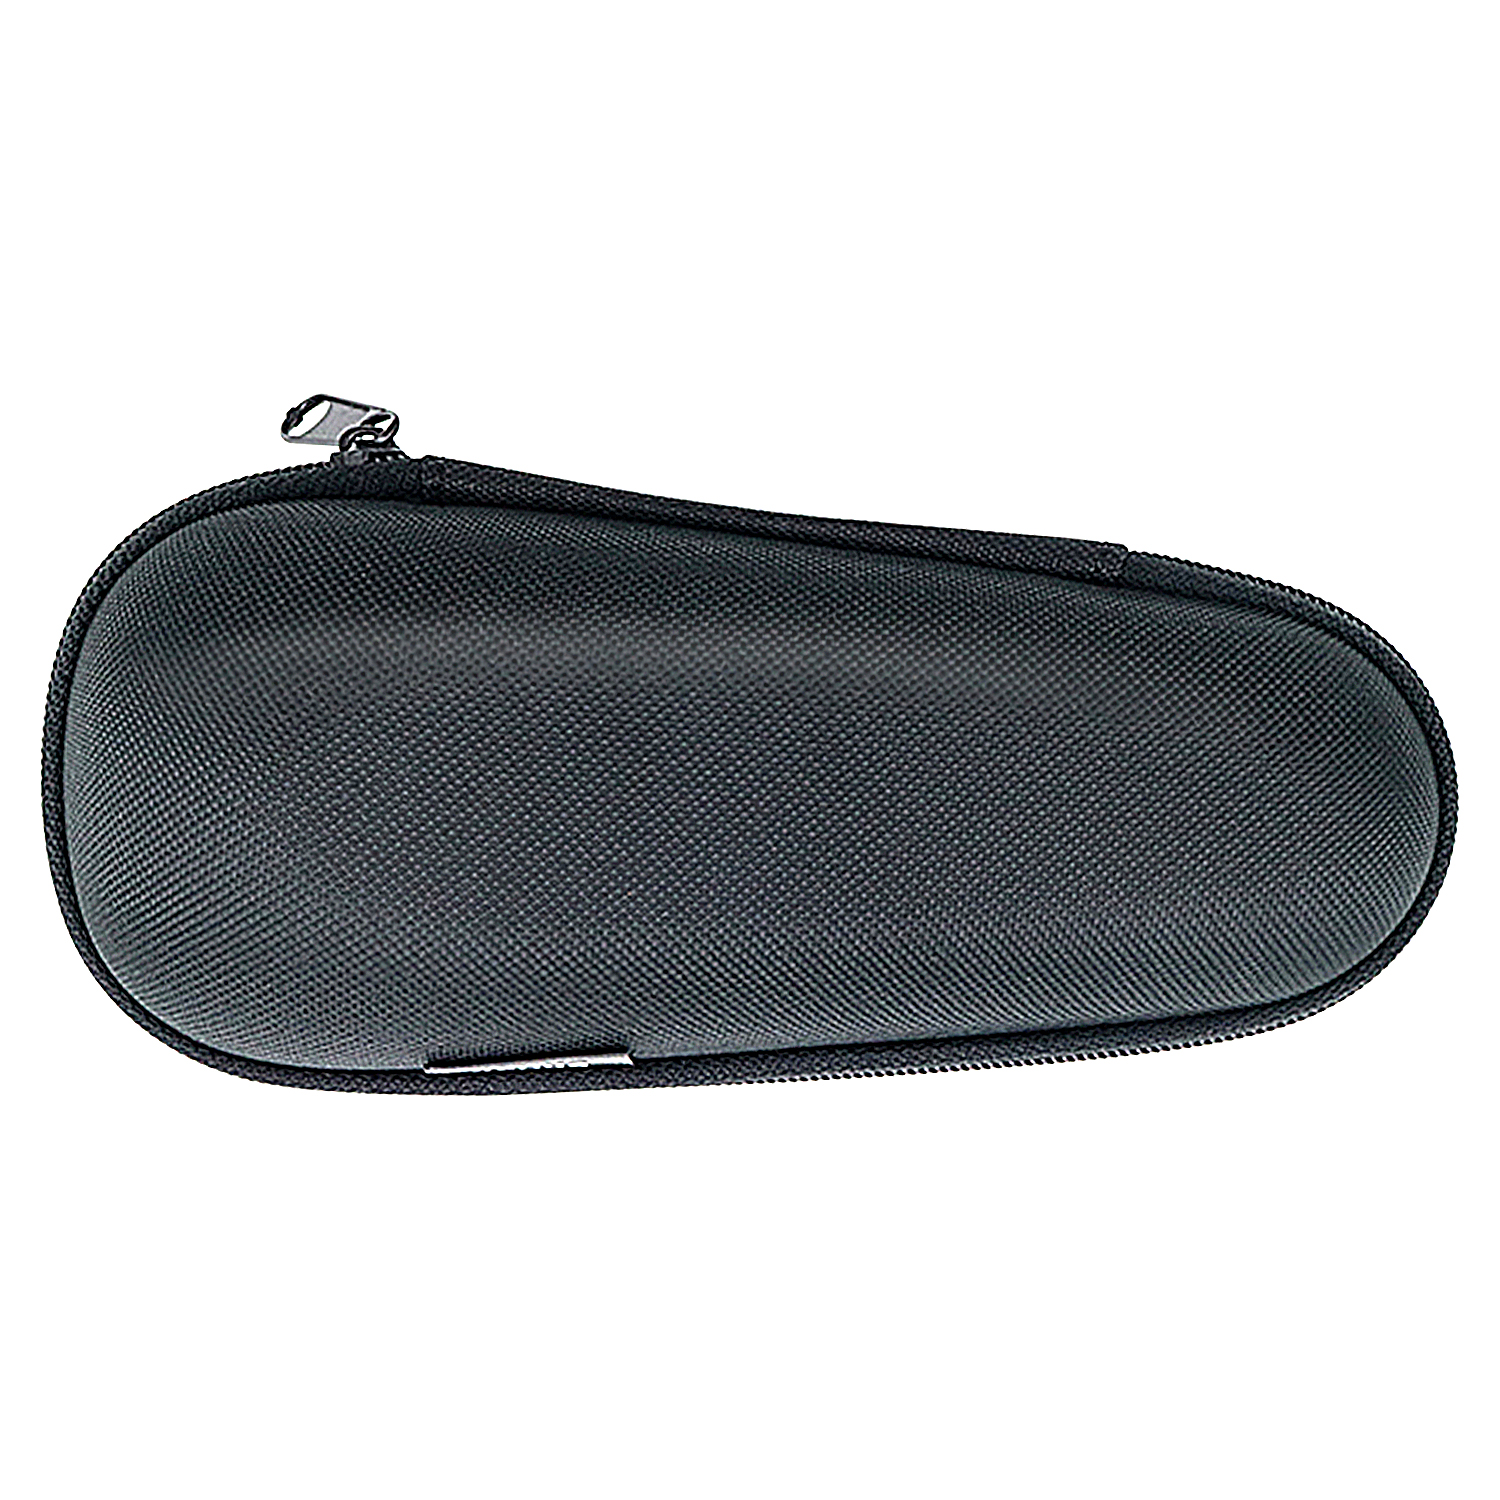 Men Electric Shaver Carry Case Bag for Braun 5030 5040 740 750cc ct4s 190s 370cc 390cc CT2S 330S 350 CT5CC 320s 330s 340s 720sMen Electric Shaver Carry Case Bag for Braun 5030 5040 740 750cc ct4s 190s 370cc 390cc CT2S 330S 350 CT5CC 320s 330s 340s 720s